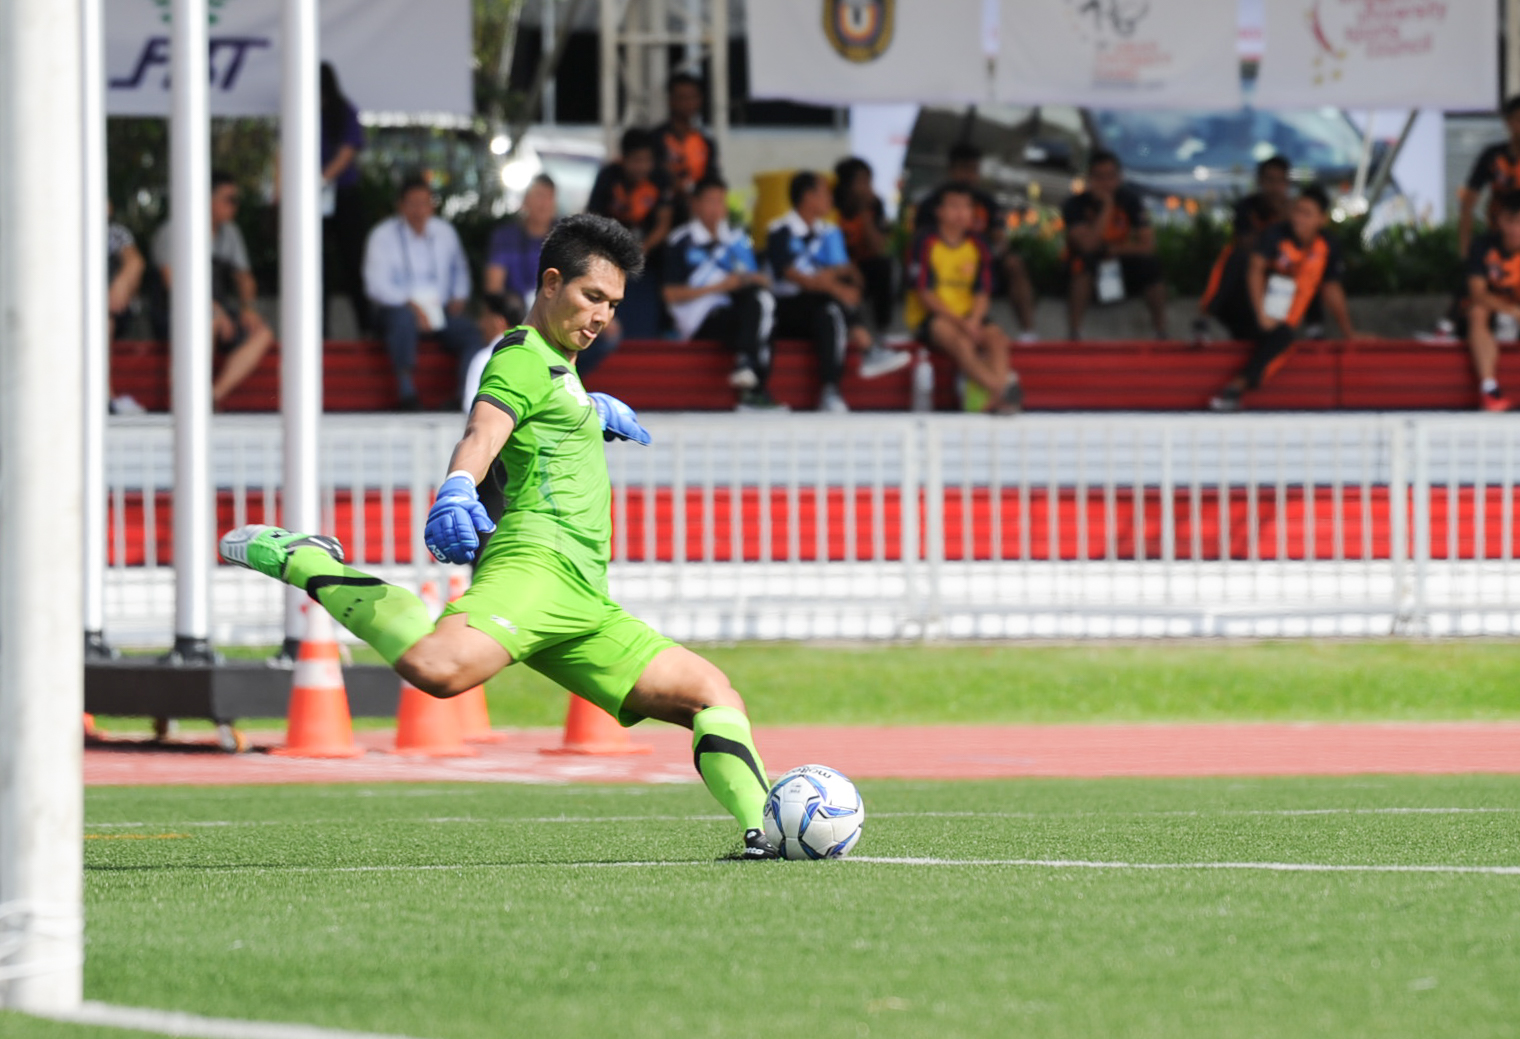 The Laotian goal keeper kicks the ball during the soccer competition of the ASEAN University Games at the Nanyang Technological University.